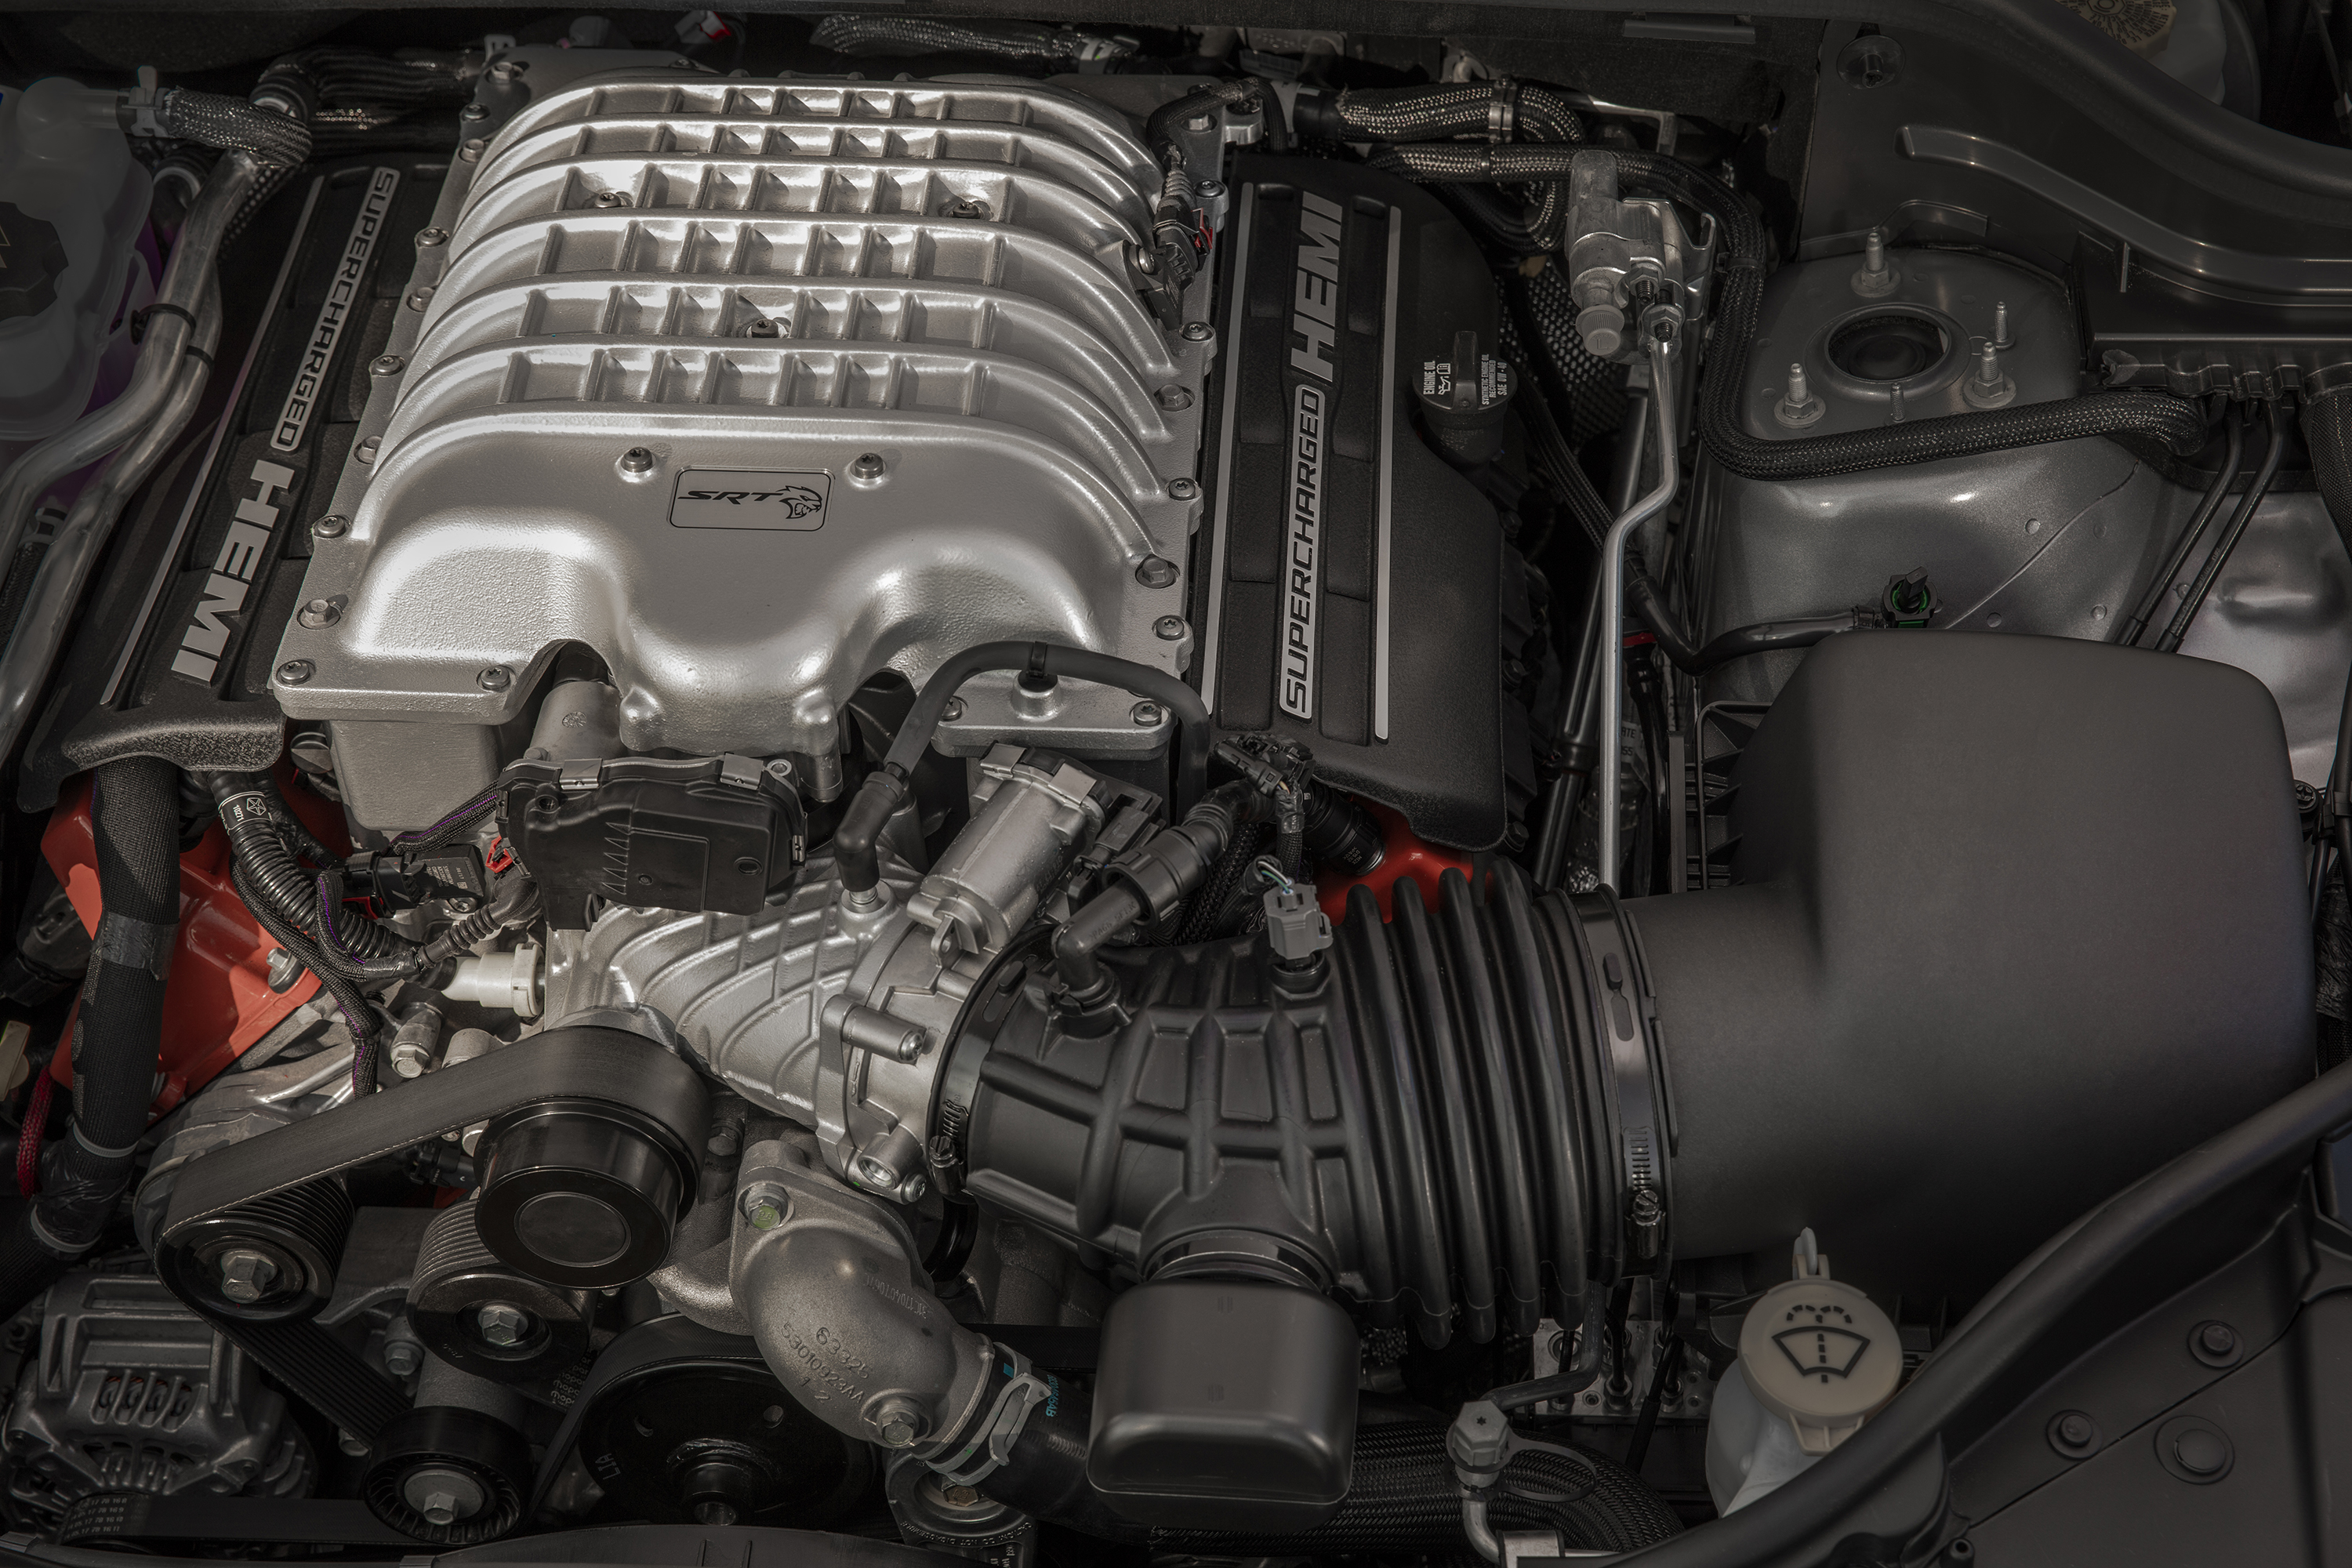 The engine of the Jeep Trackhawk.